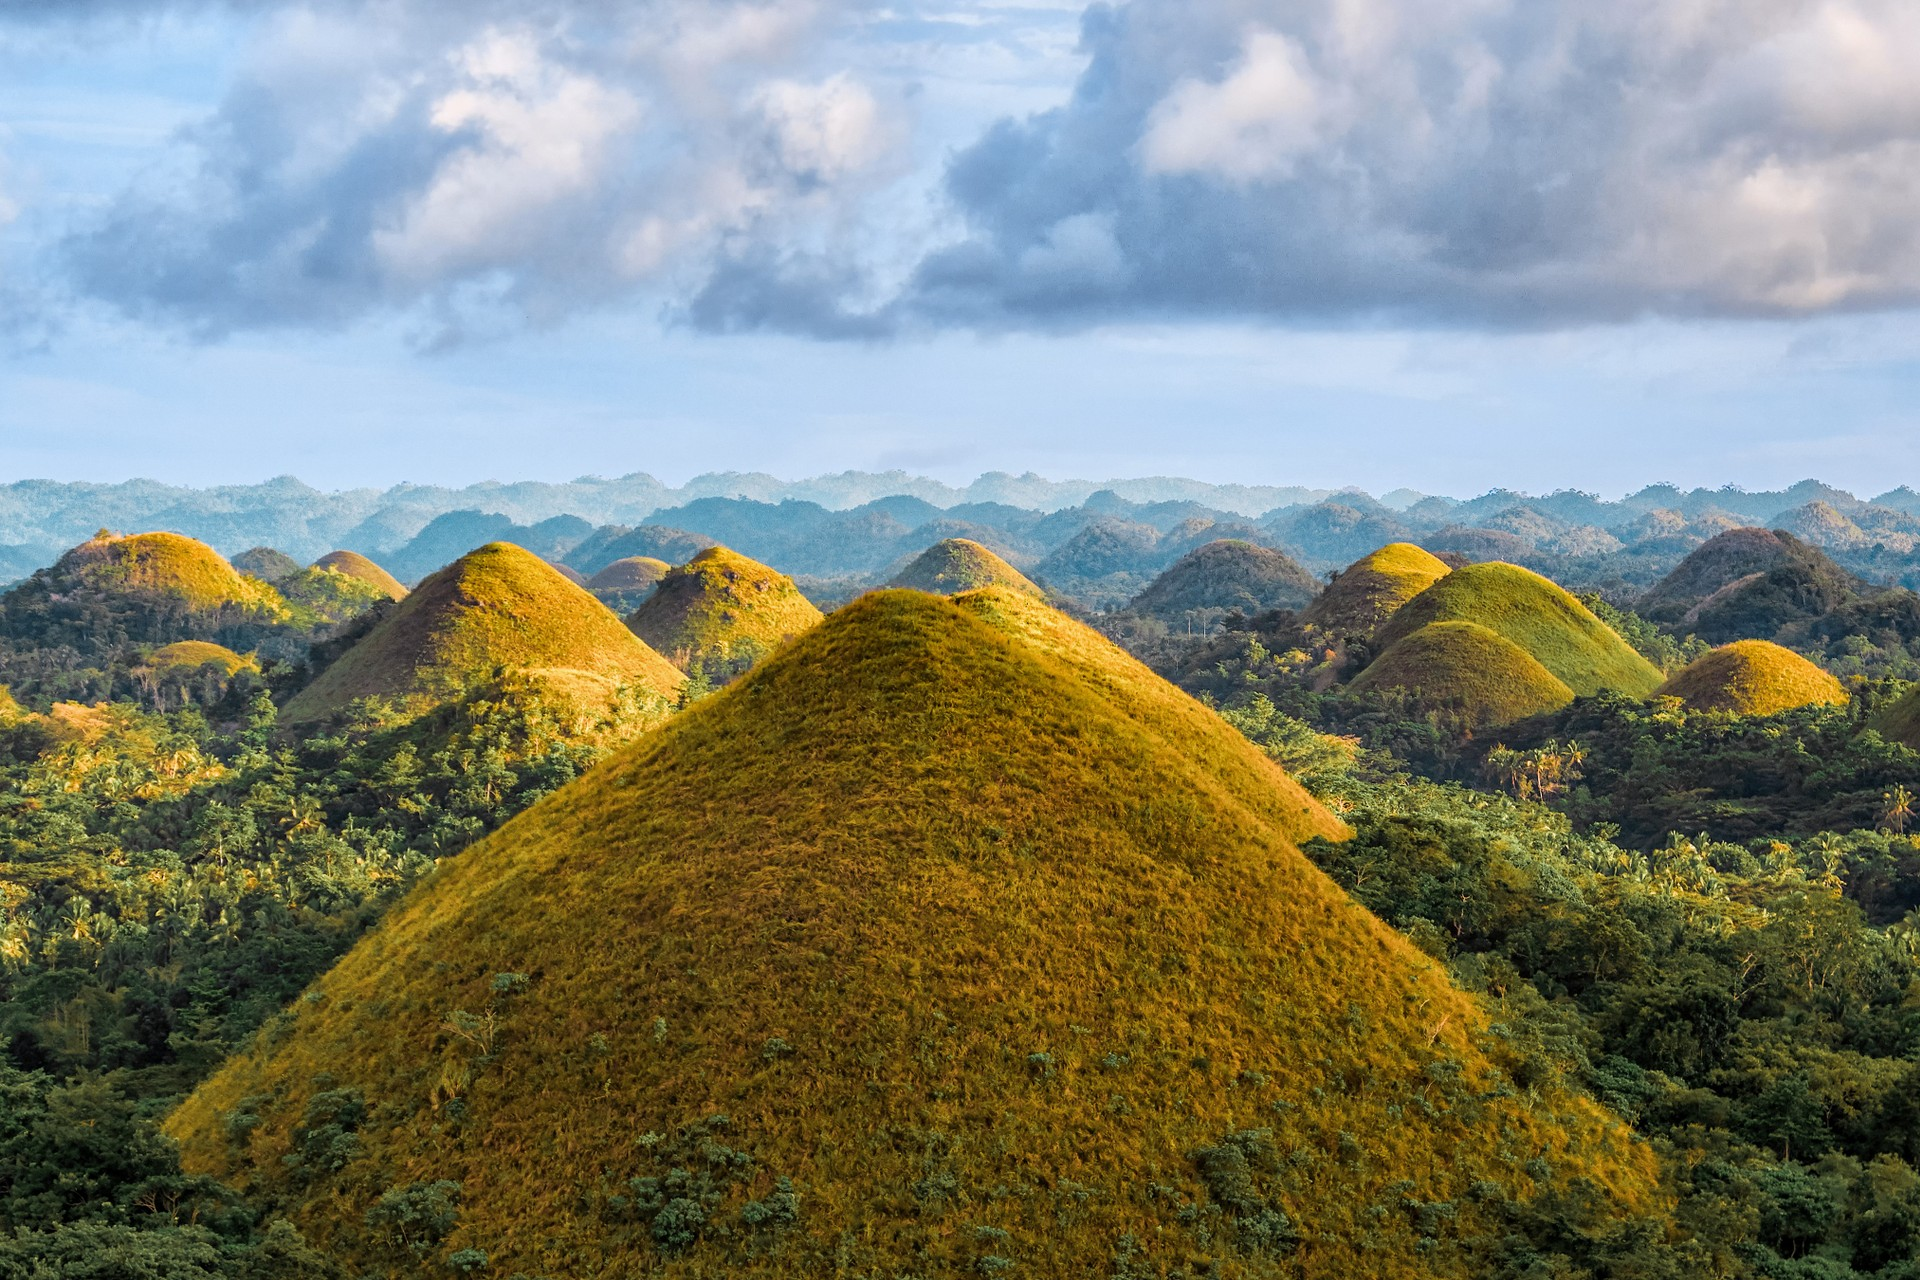 Philippines holidays: The Chocolate Hills